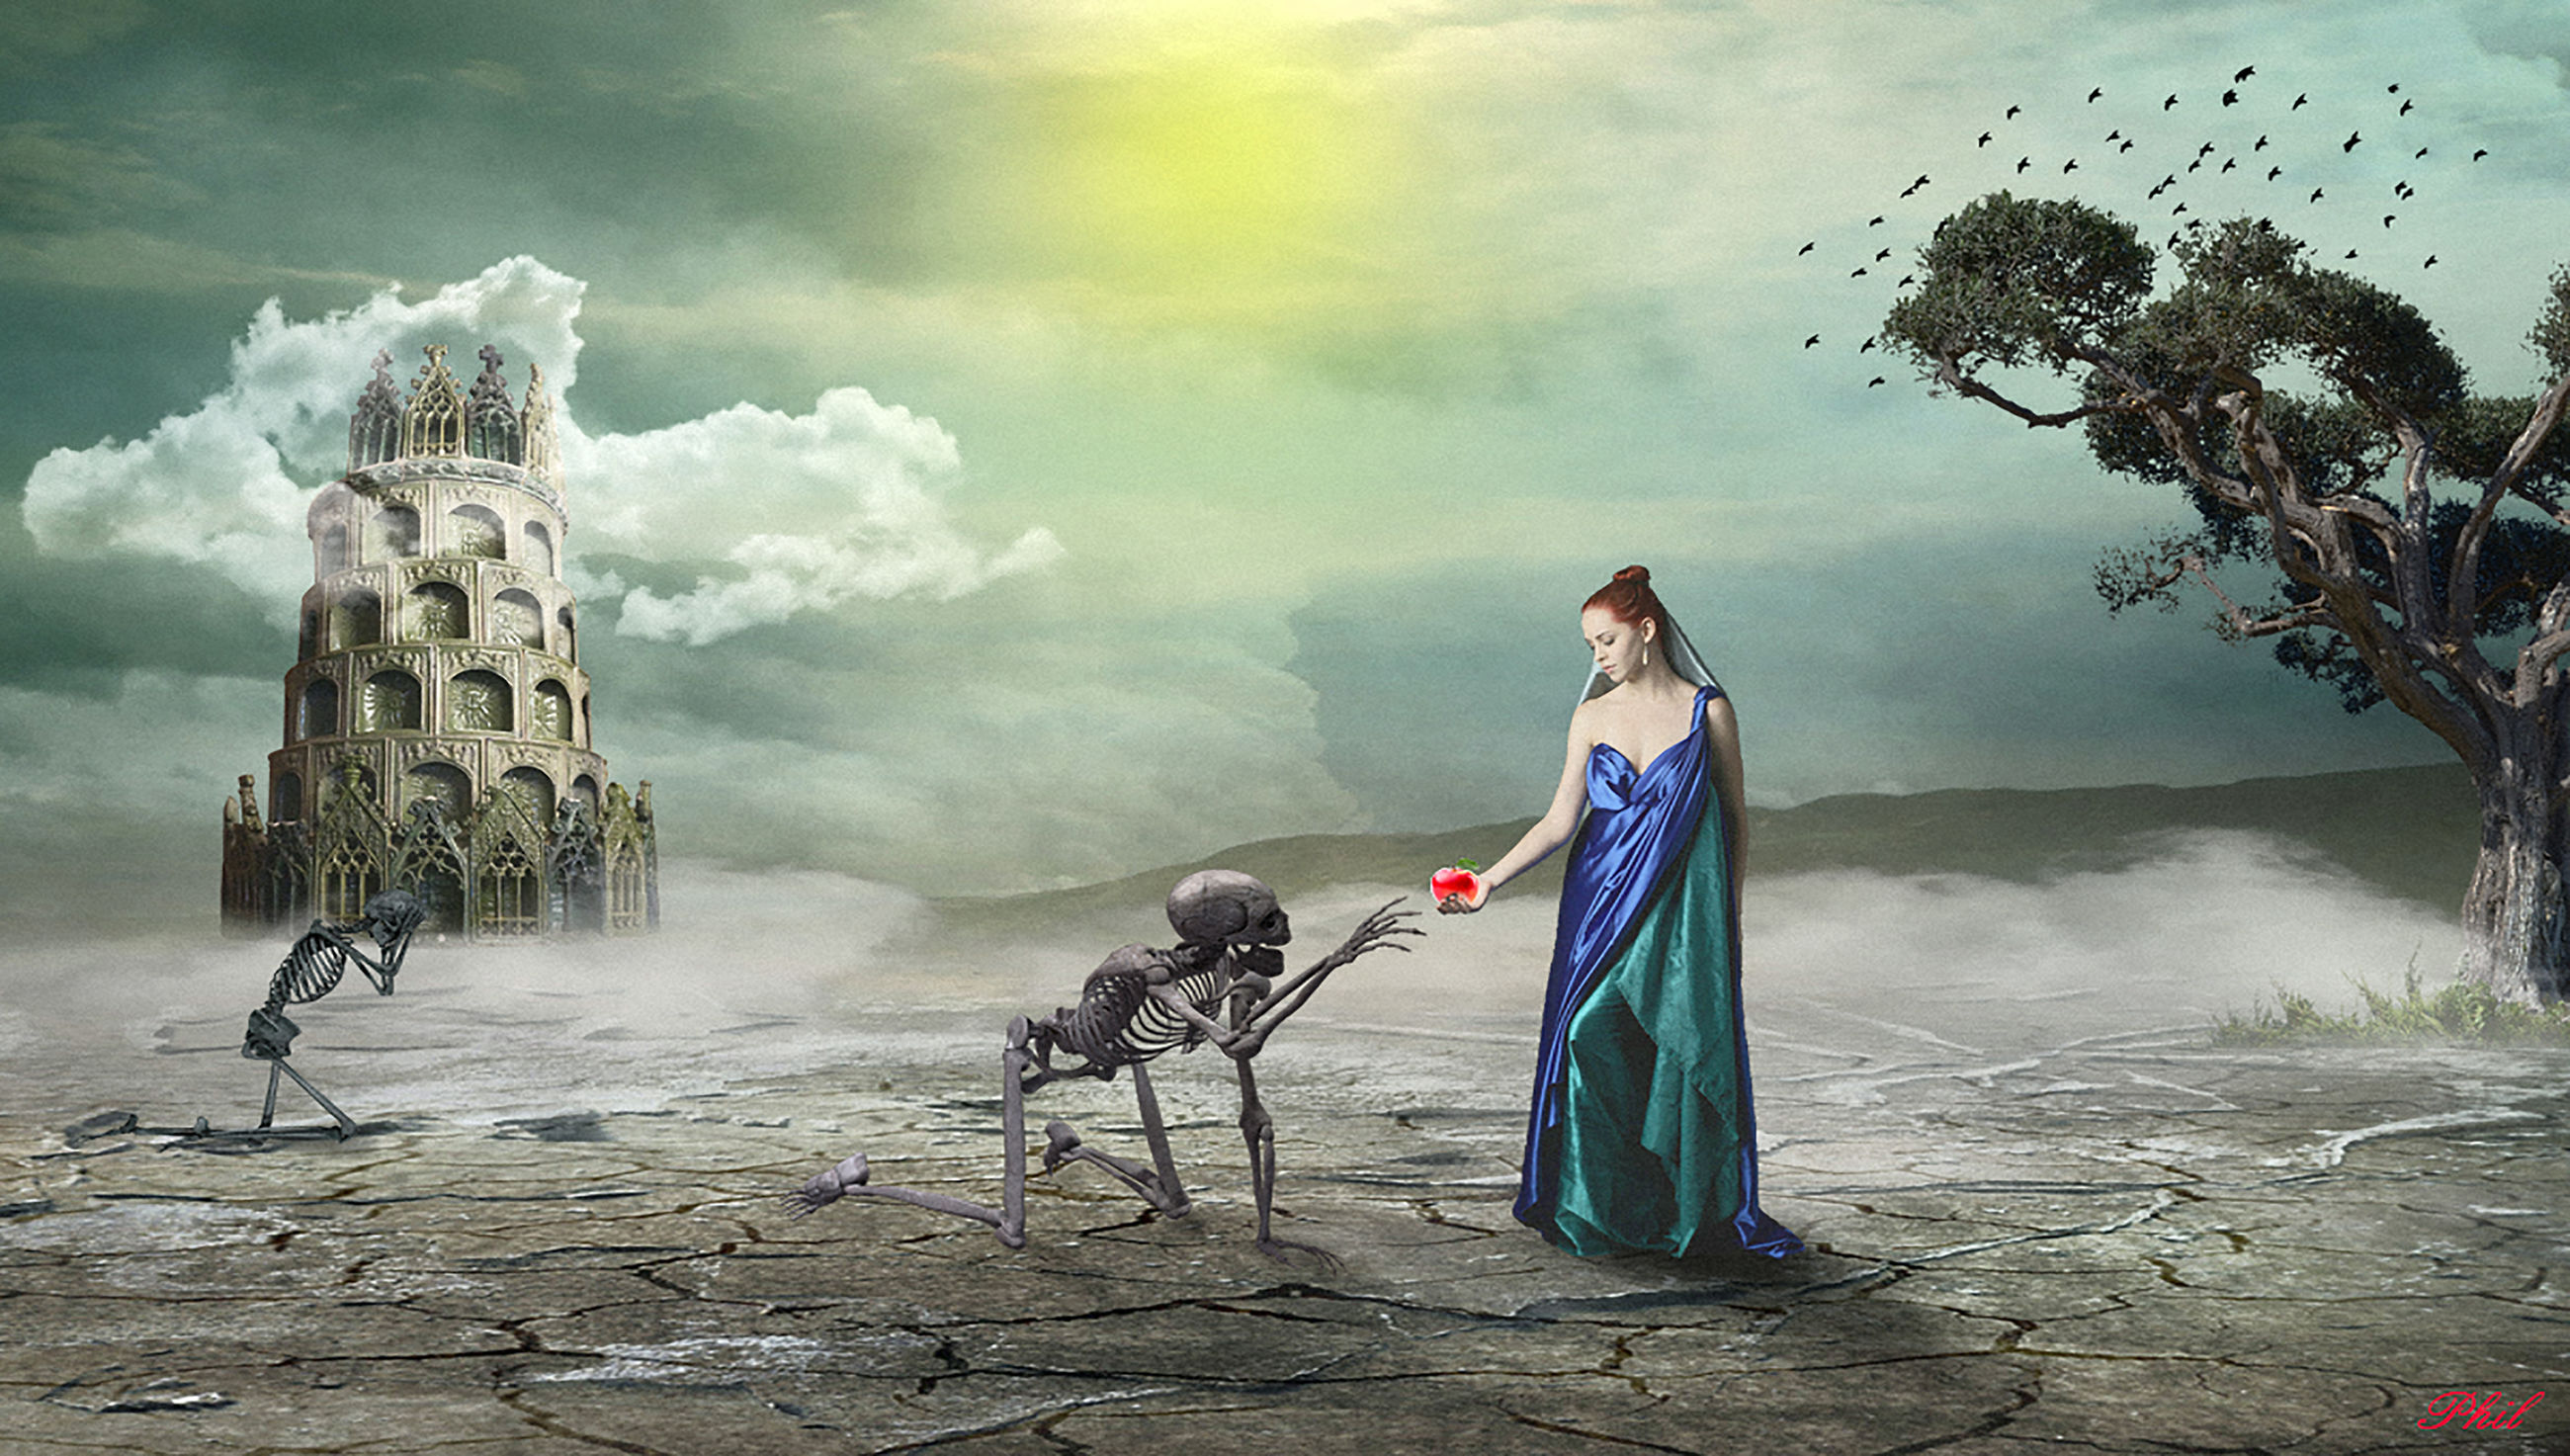 sky, real people, cloud - sky, one person, young adult, lifestyles, nature, architecture, animal wildlife, vertebrate, full length, one animal, built structure, women, young women, day, land, outdoors, digital composite